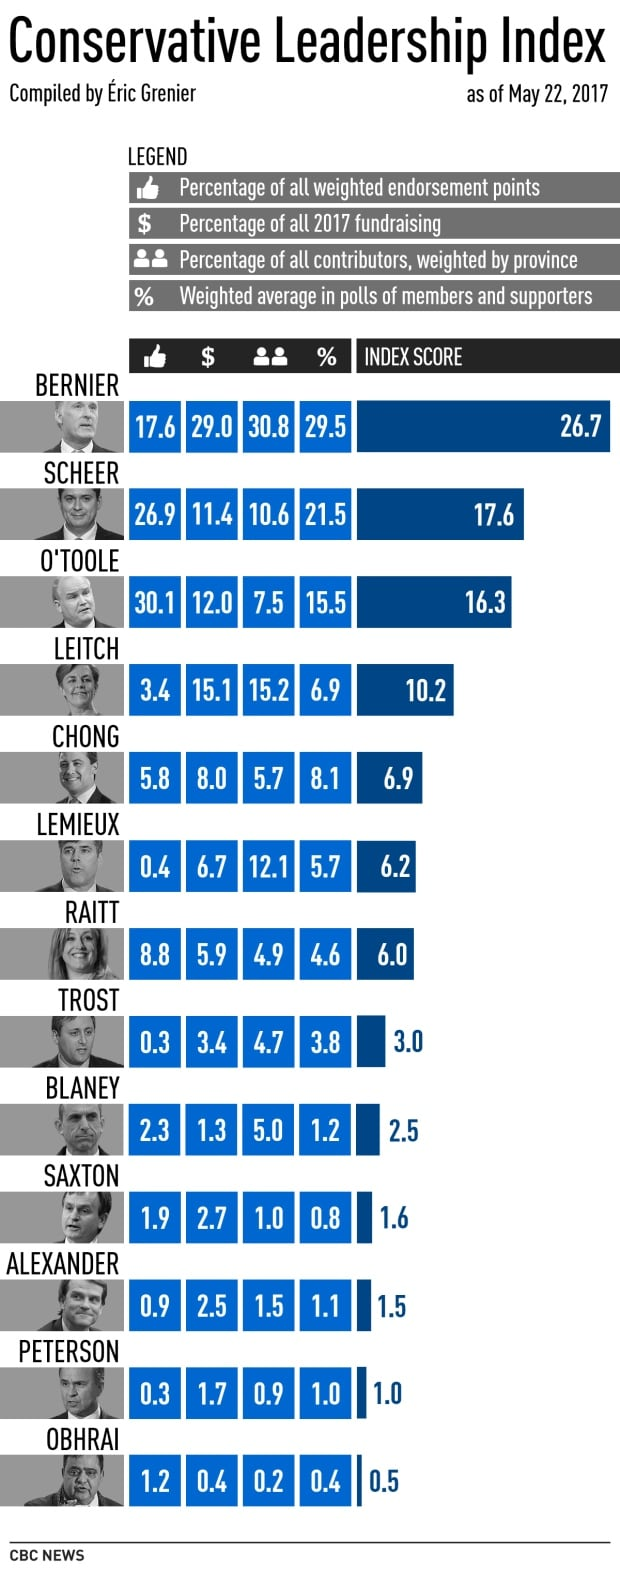 Conservative Leadership Index, May 22